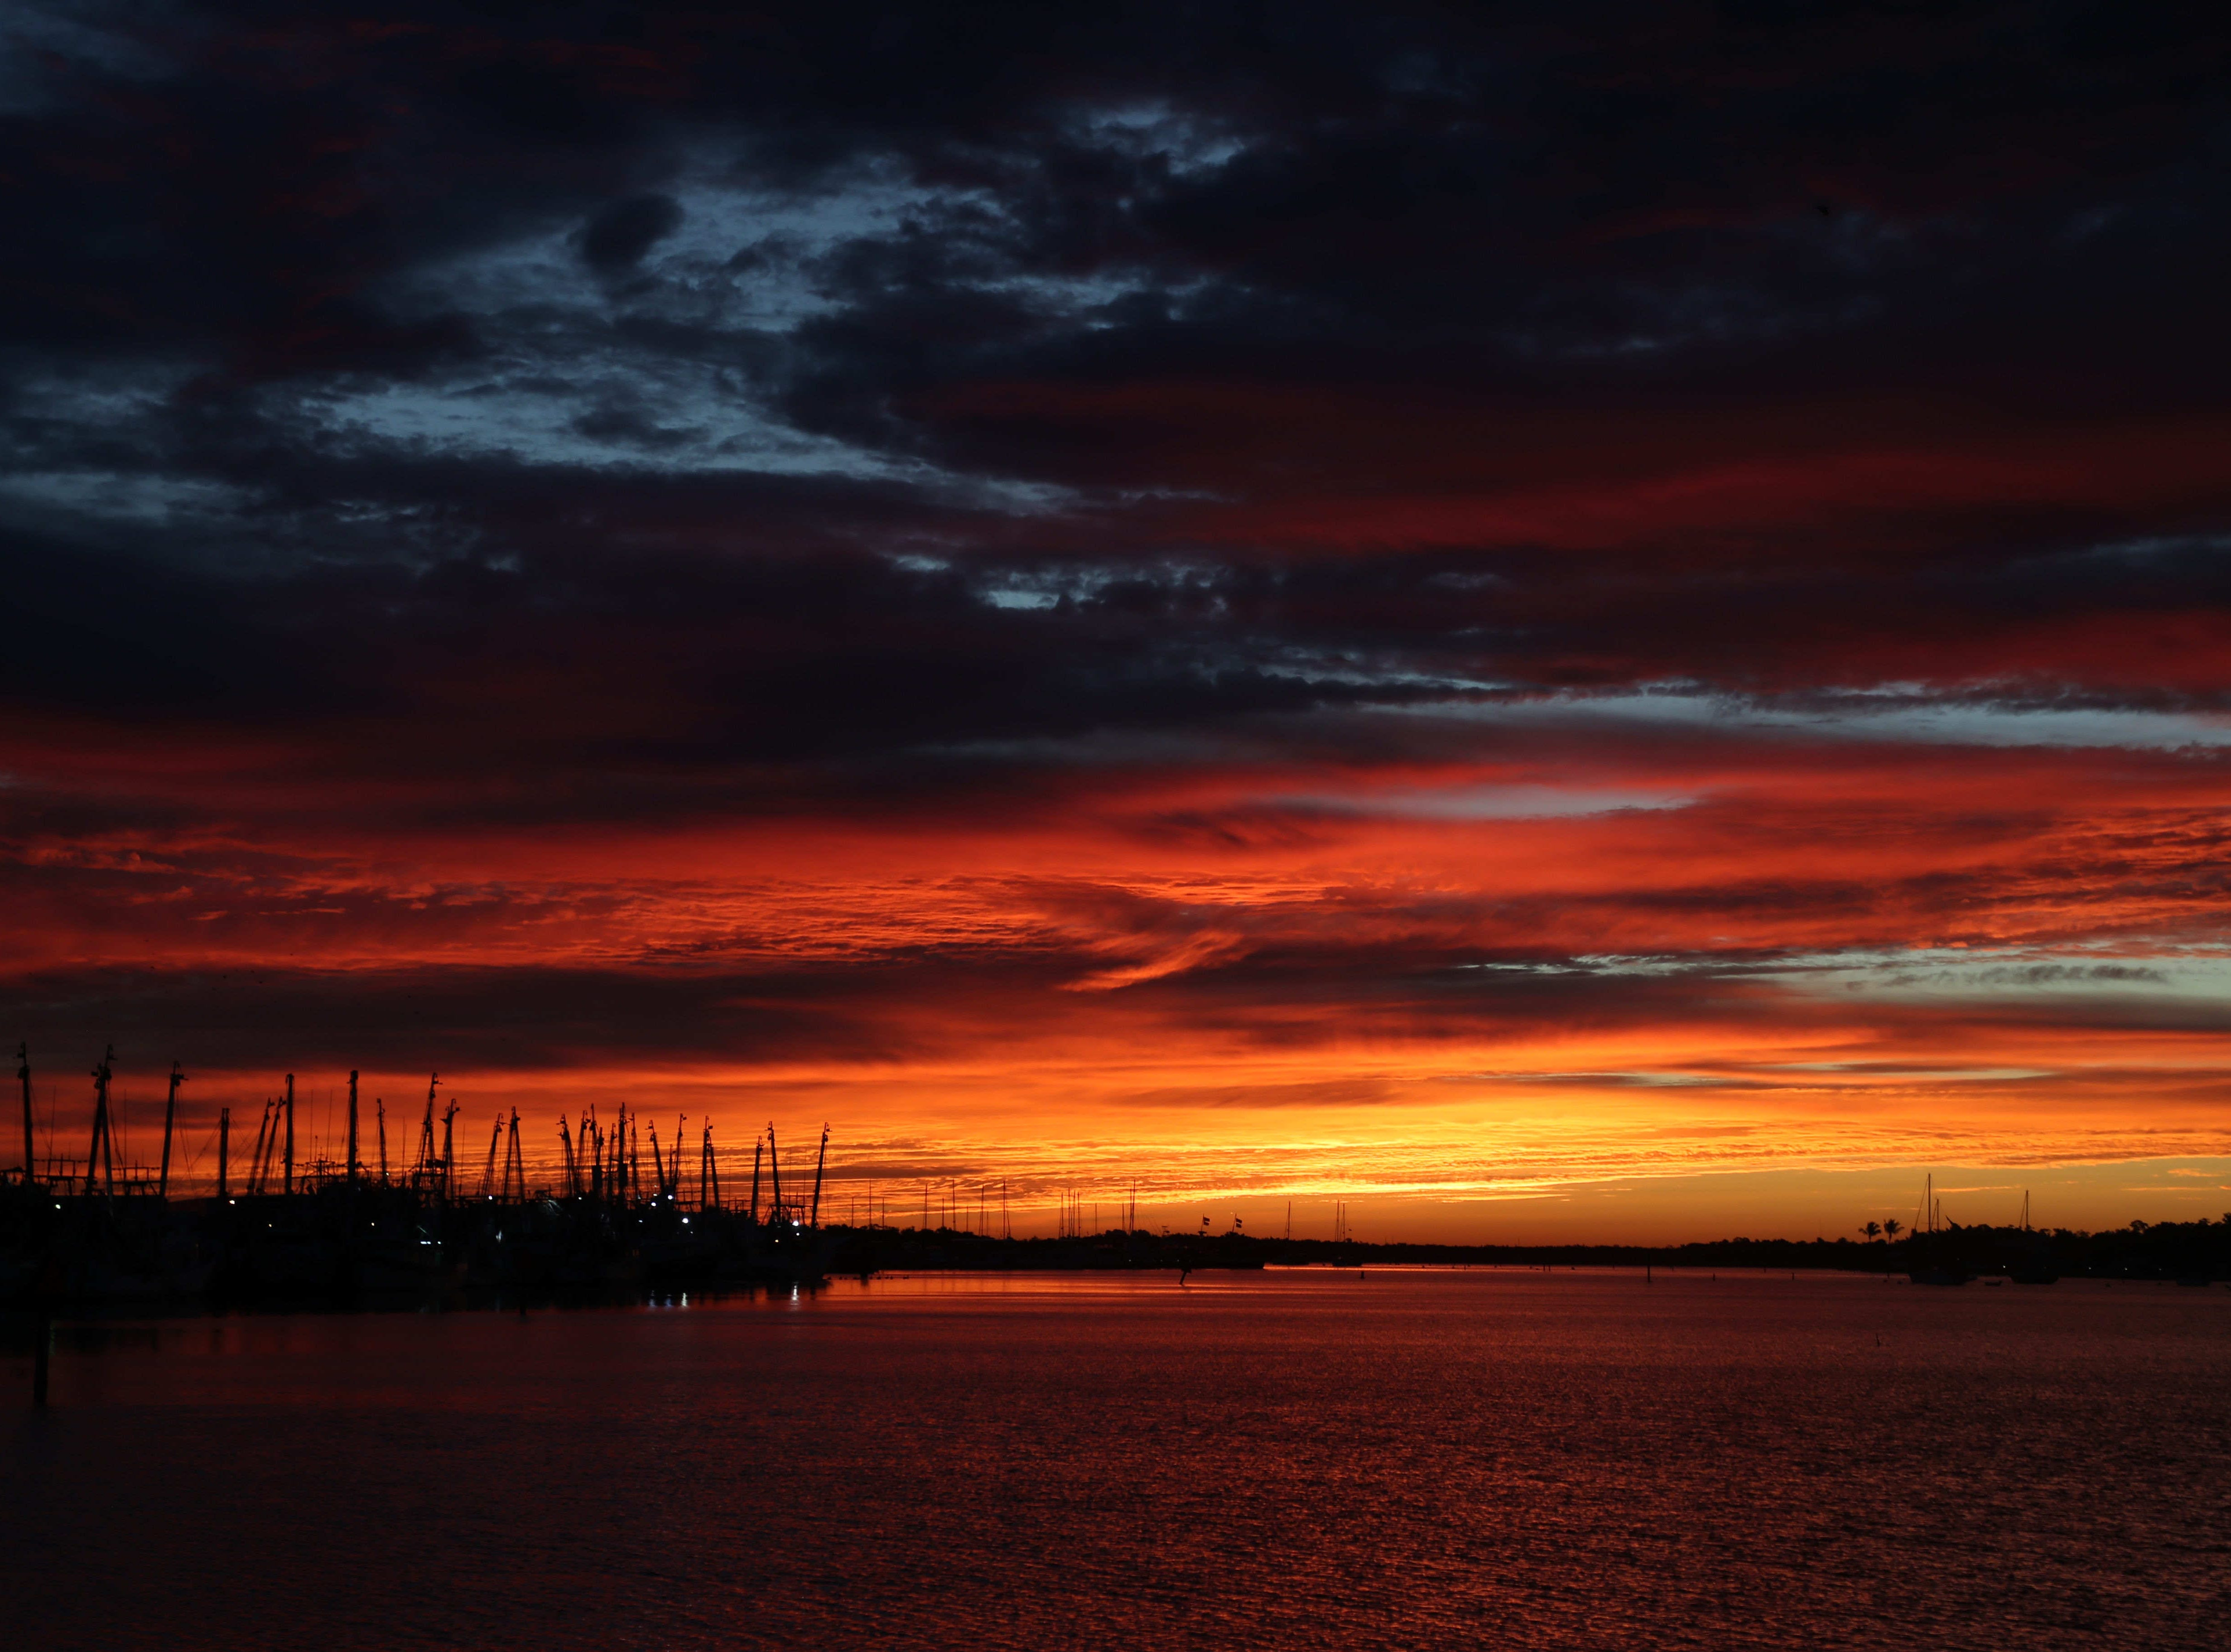 The sunrise on Thursday 11/29/2018 was spectacular. Photographed from the Bonita Bills and Doc Ford's under the Matanzas Bridge on Fort Myers Beach.